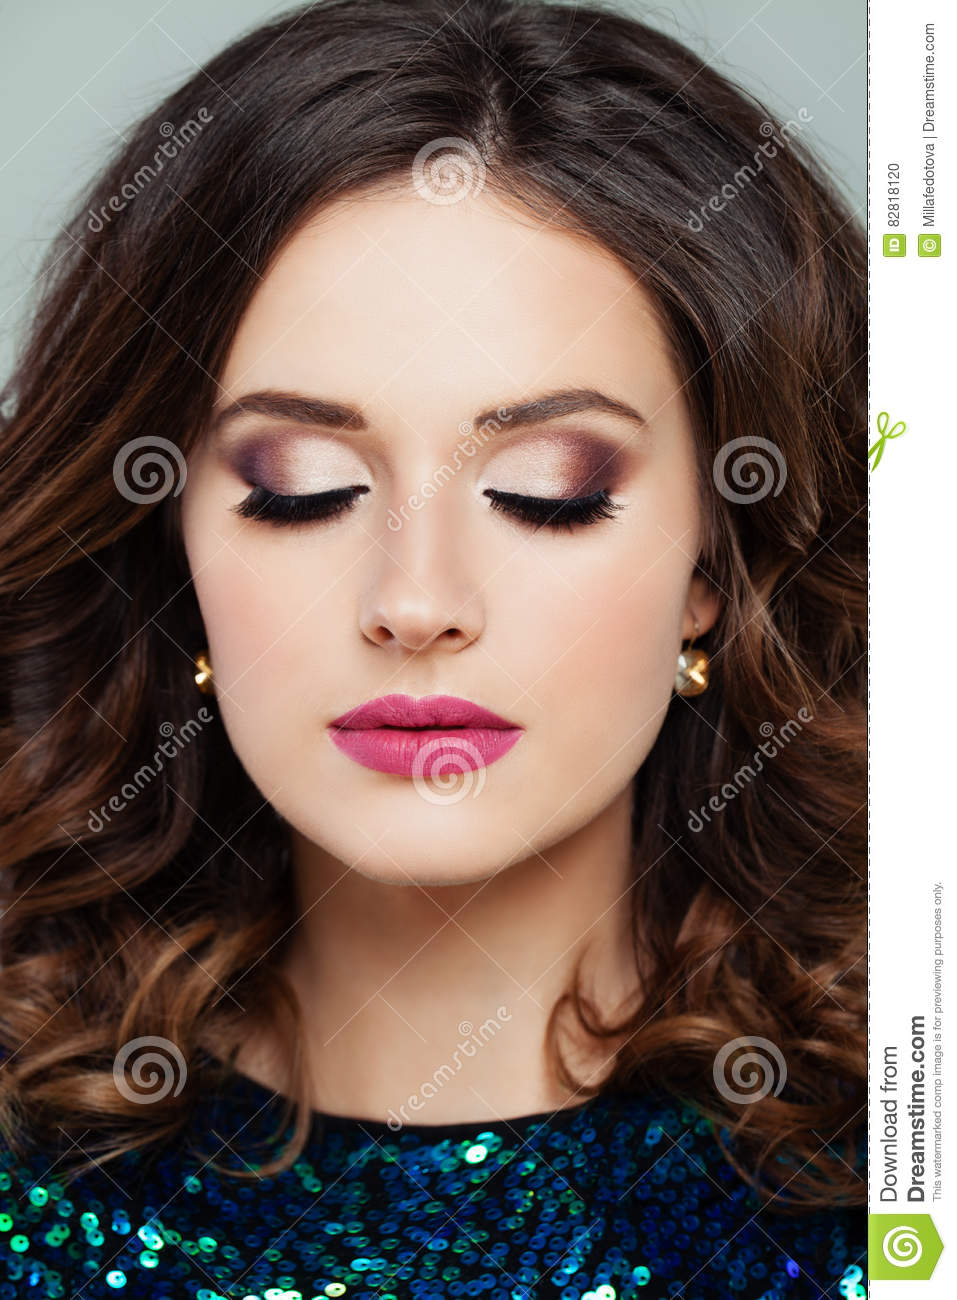 711d7e98f24 Closeup Portrait Of Cute Woman With Professional Makeup Stock Photo ...